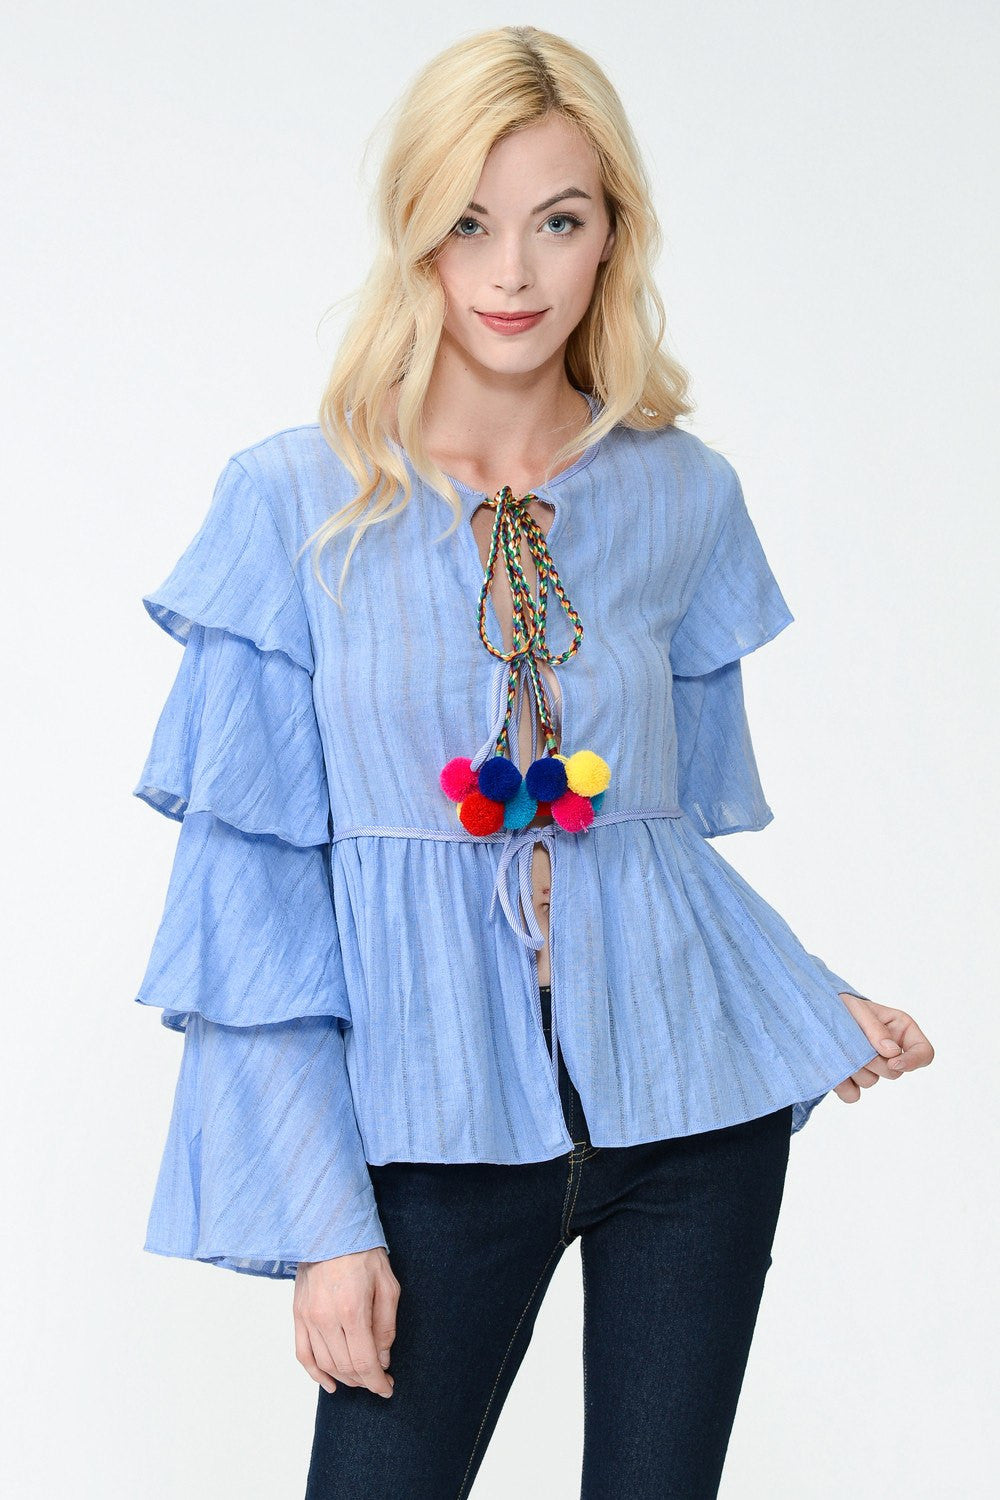 Ruffle Detail Pom Pom Jacket Top